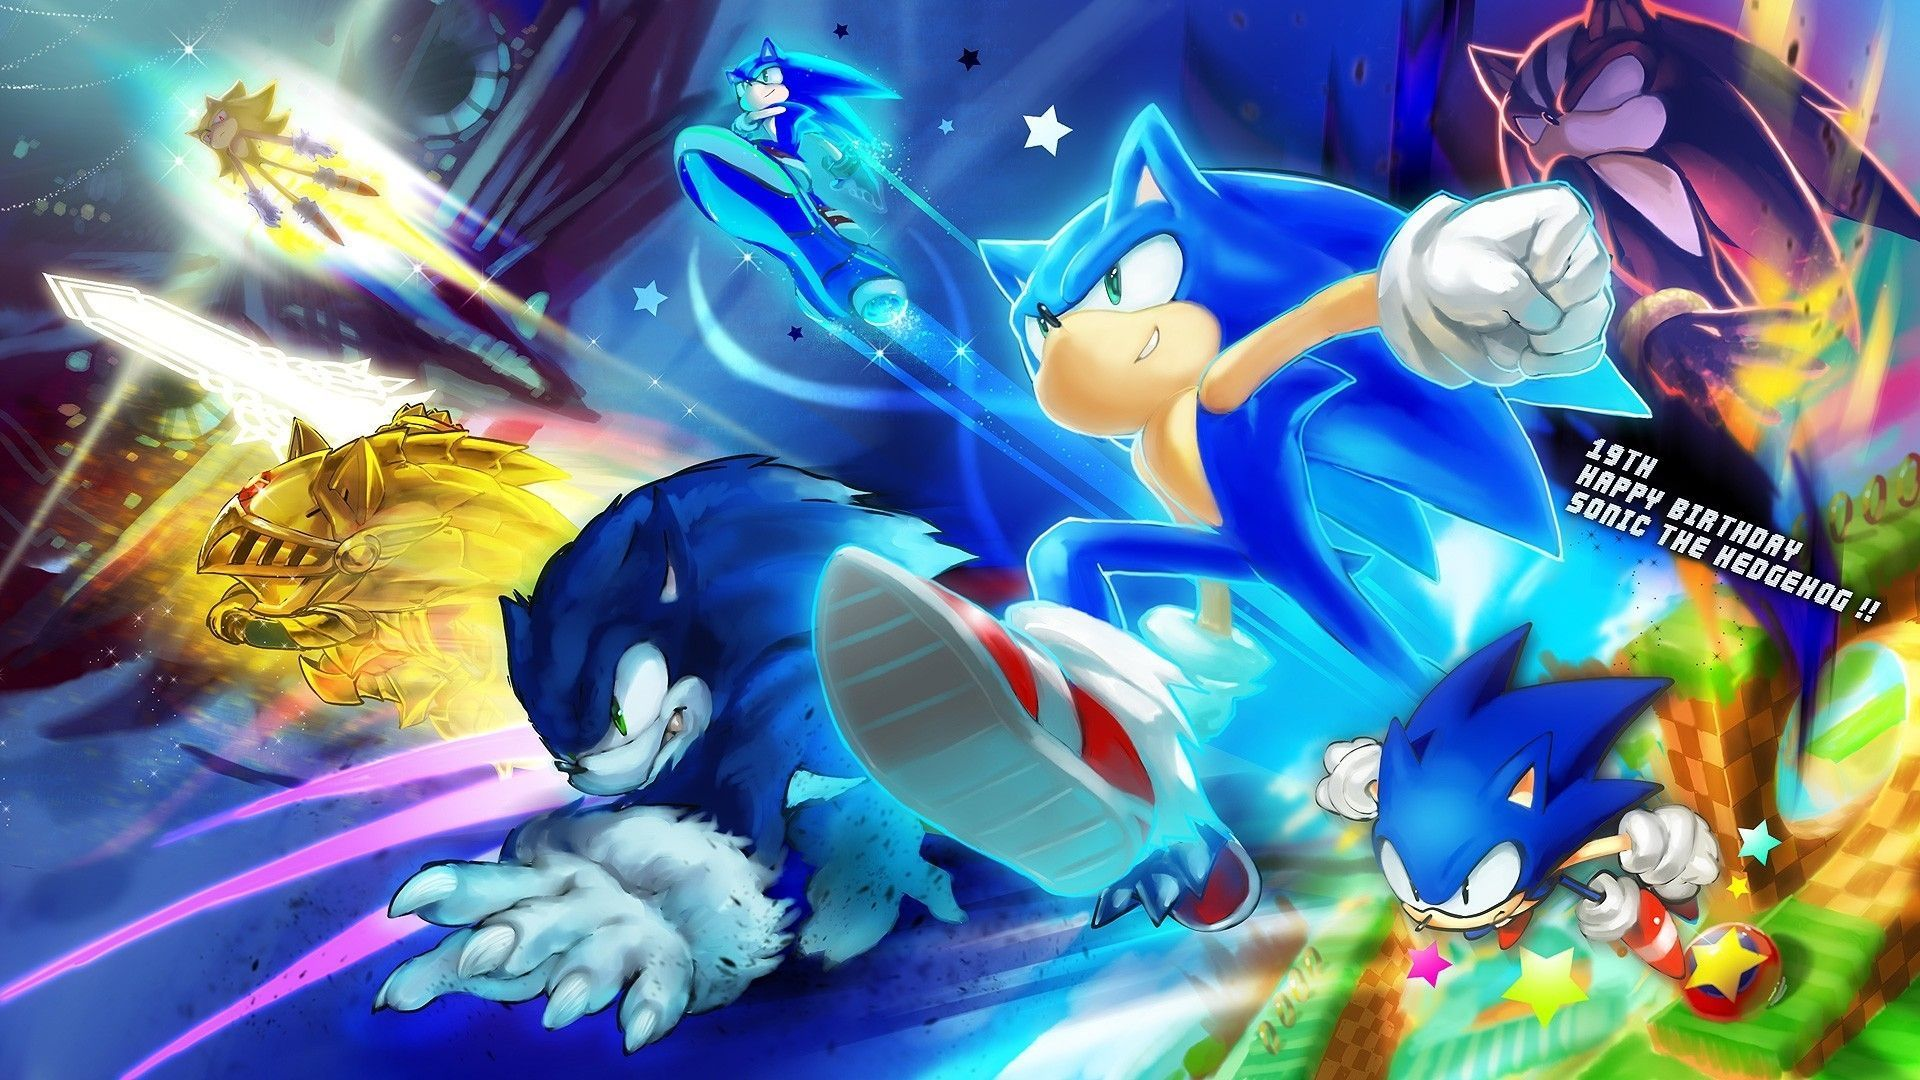 Sonic Wallpaper 72 Images For Sonic Wallpapers Windows 10 Trends Sonic Sonic The Hedgehog Cartoon Wallpaper